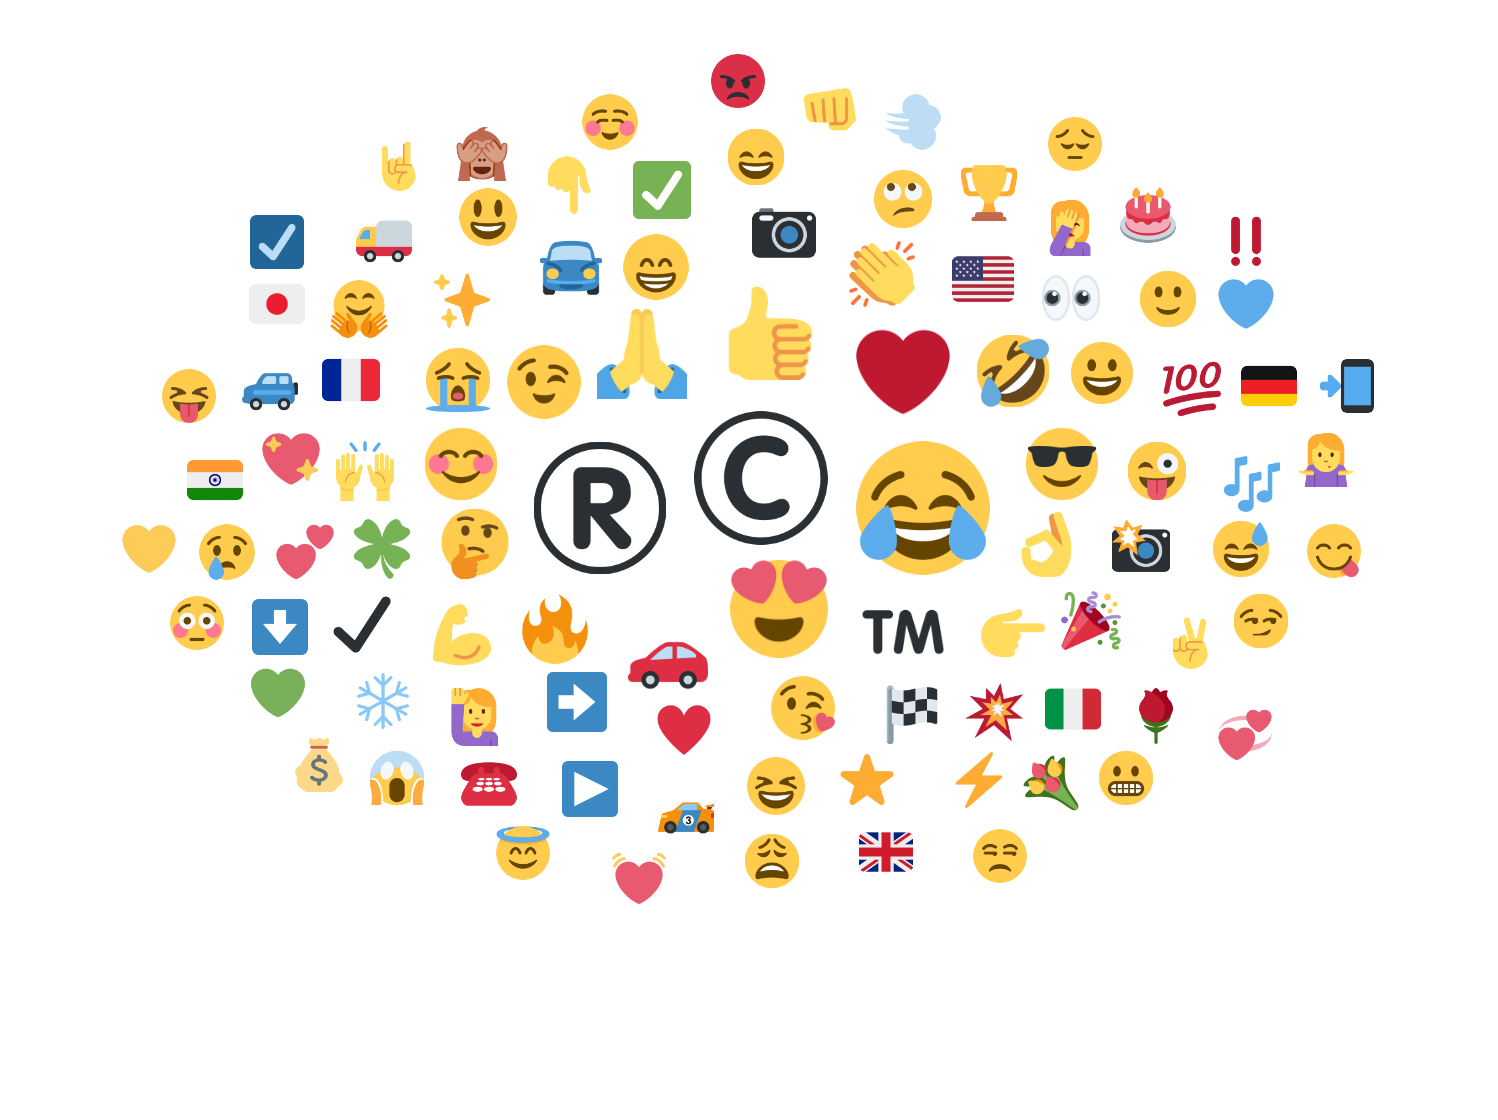 Most used emojis for automotive brands